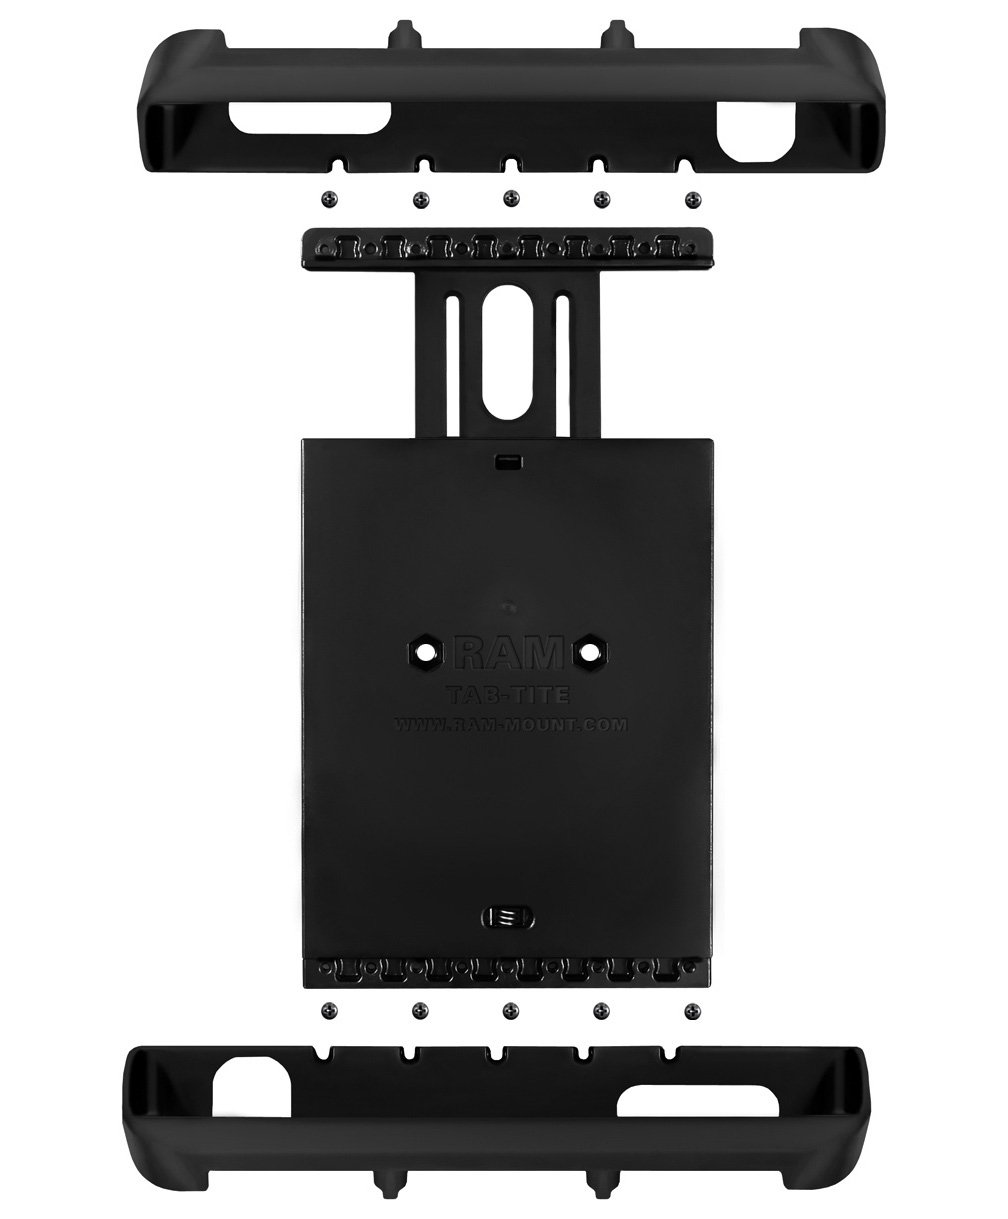 Ram Mount Tab-Tite Universal Clamping Cradle for 10-Inch Screen Tablets with Heavy Duty Cases Including The Apple iPad 4/3/2 (RAMHOLTAB8U)